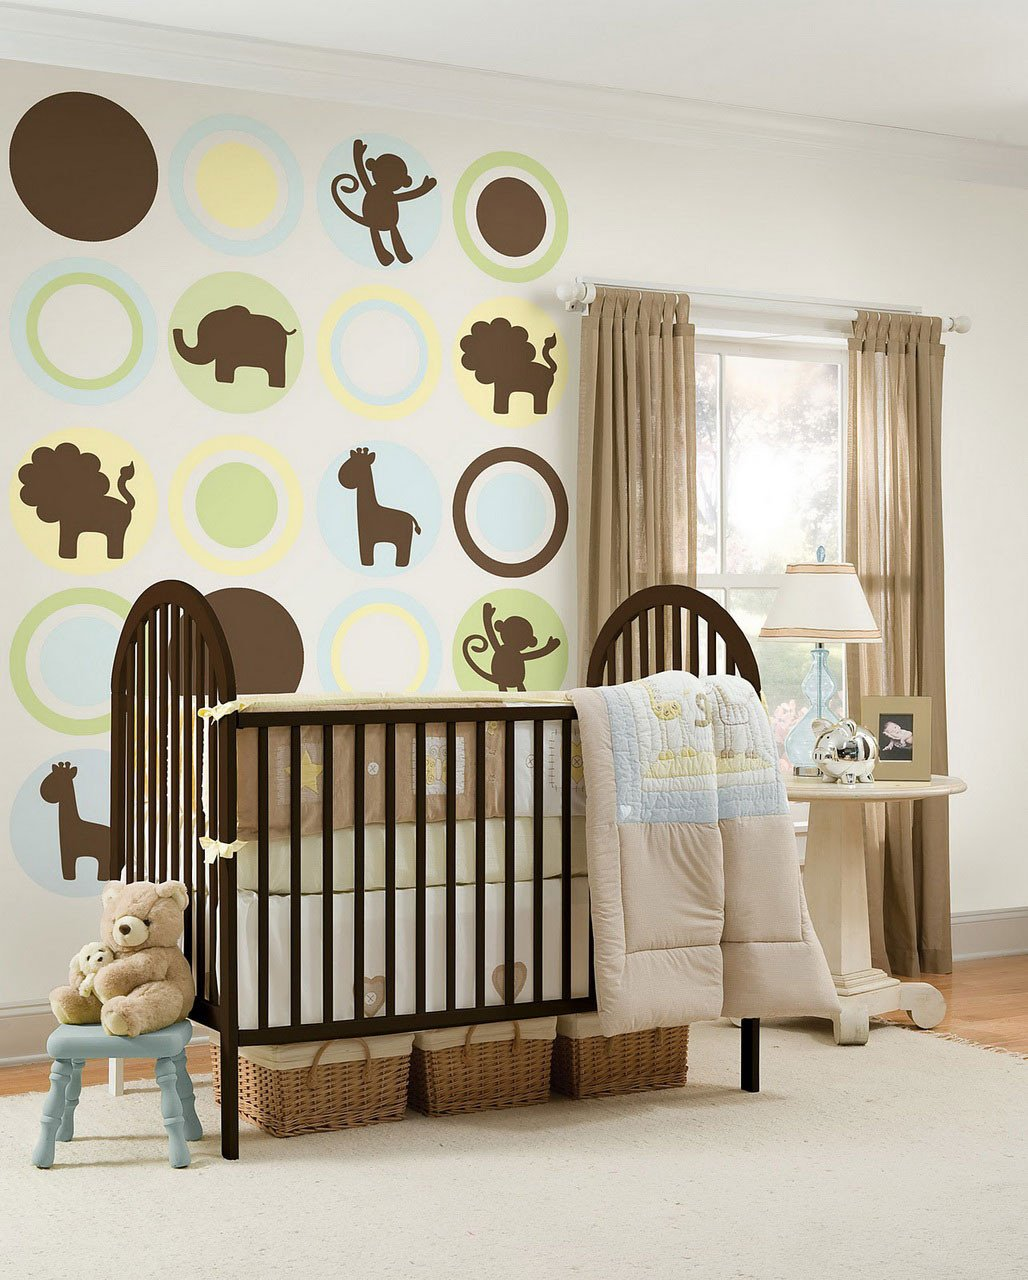 Baby Room Wall Decor Ideas Luxury Dream Nursery for Your Baby